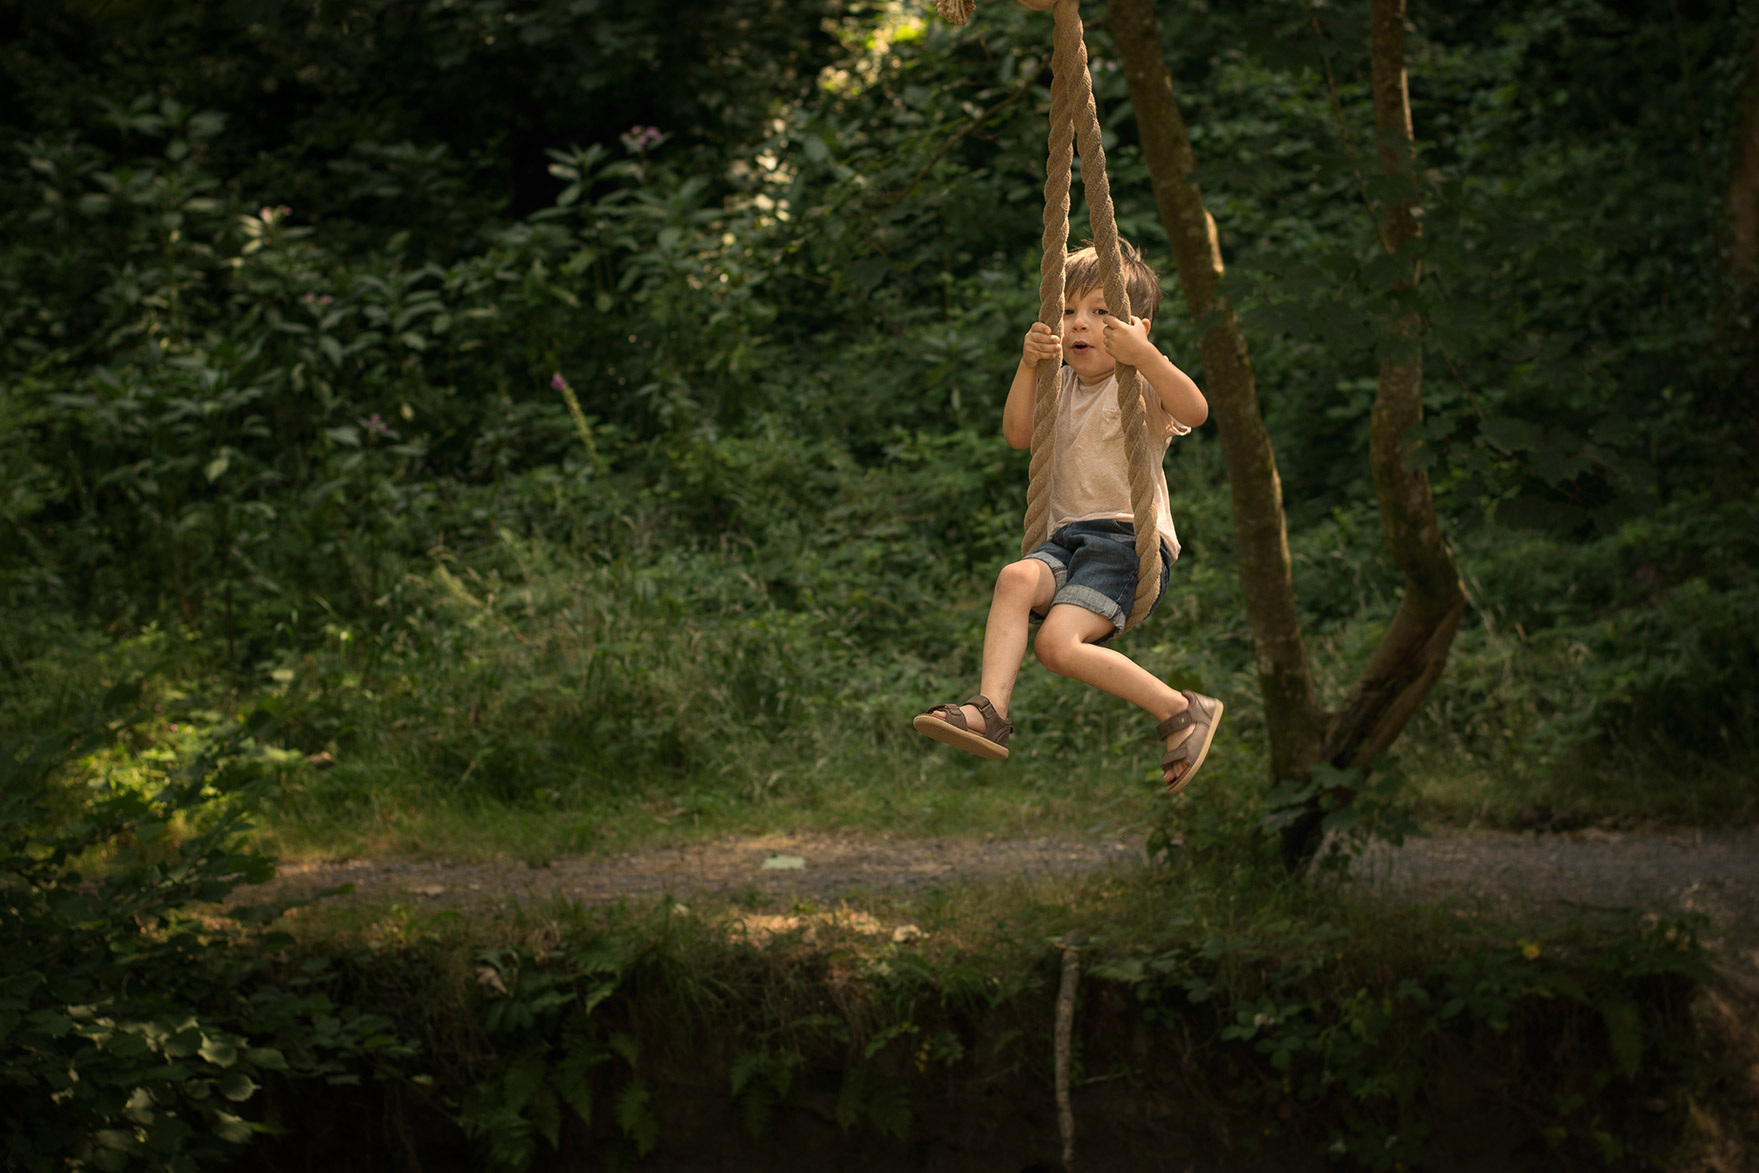 Boy swinging over the river on rope swing laughing wearing trilby hat at Colby Woodland Gardens, National Trust